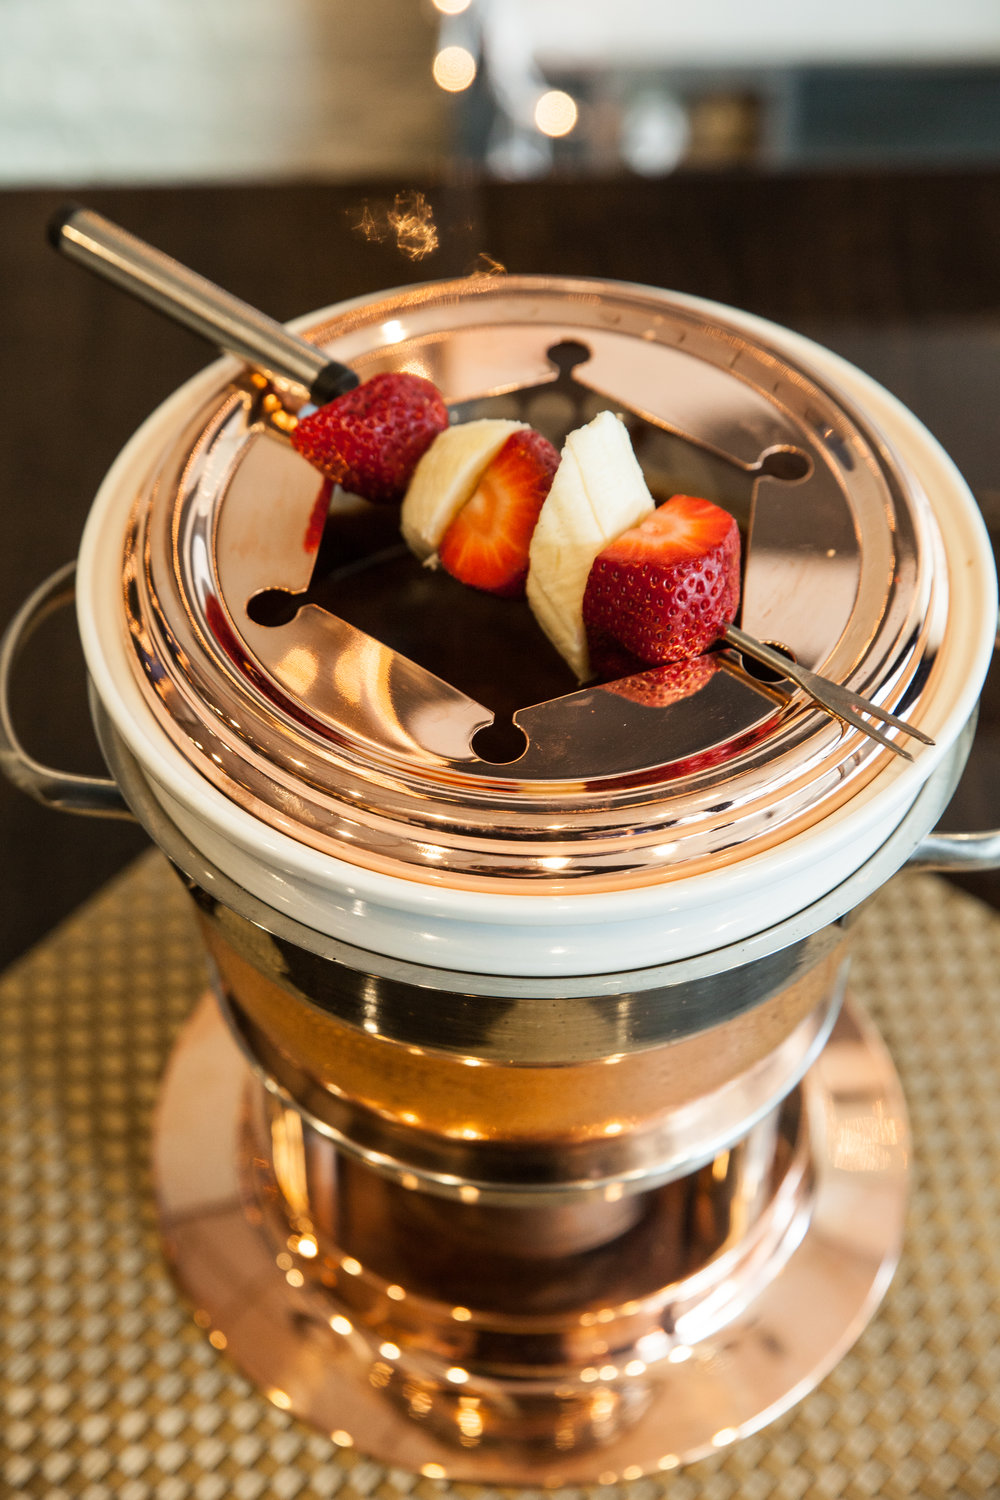 Mezze Bar - 7. Chocalate Fondue-vertical.jpg